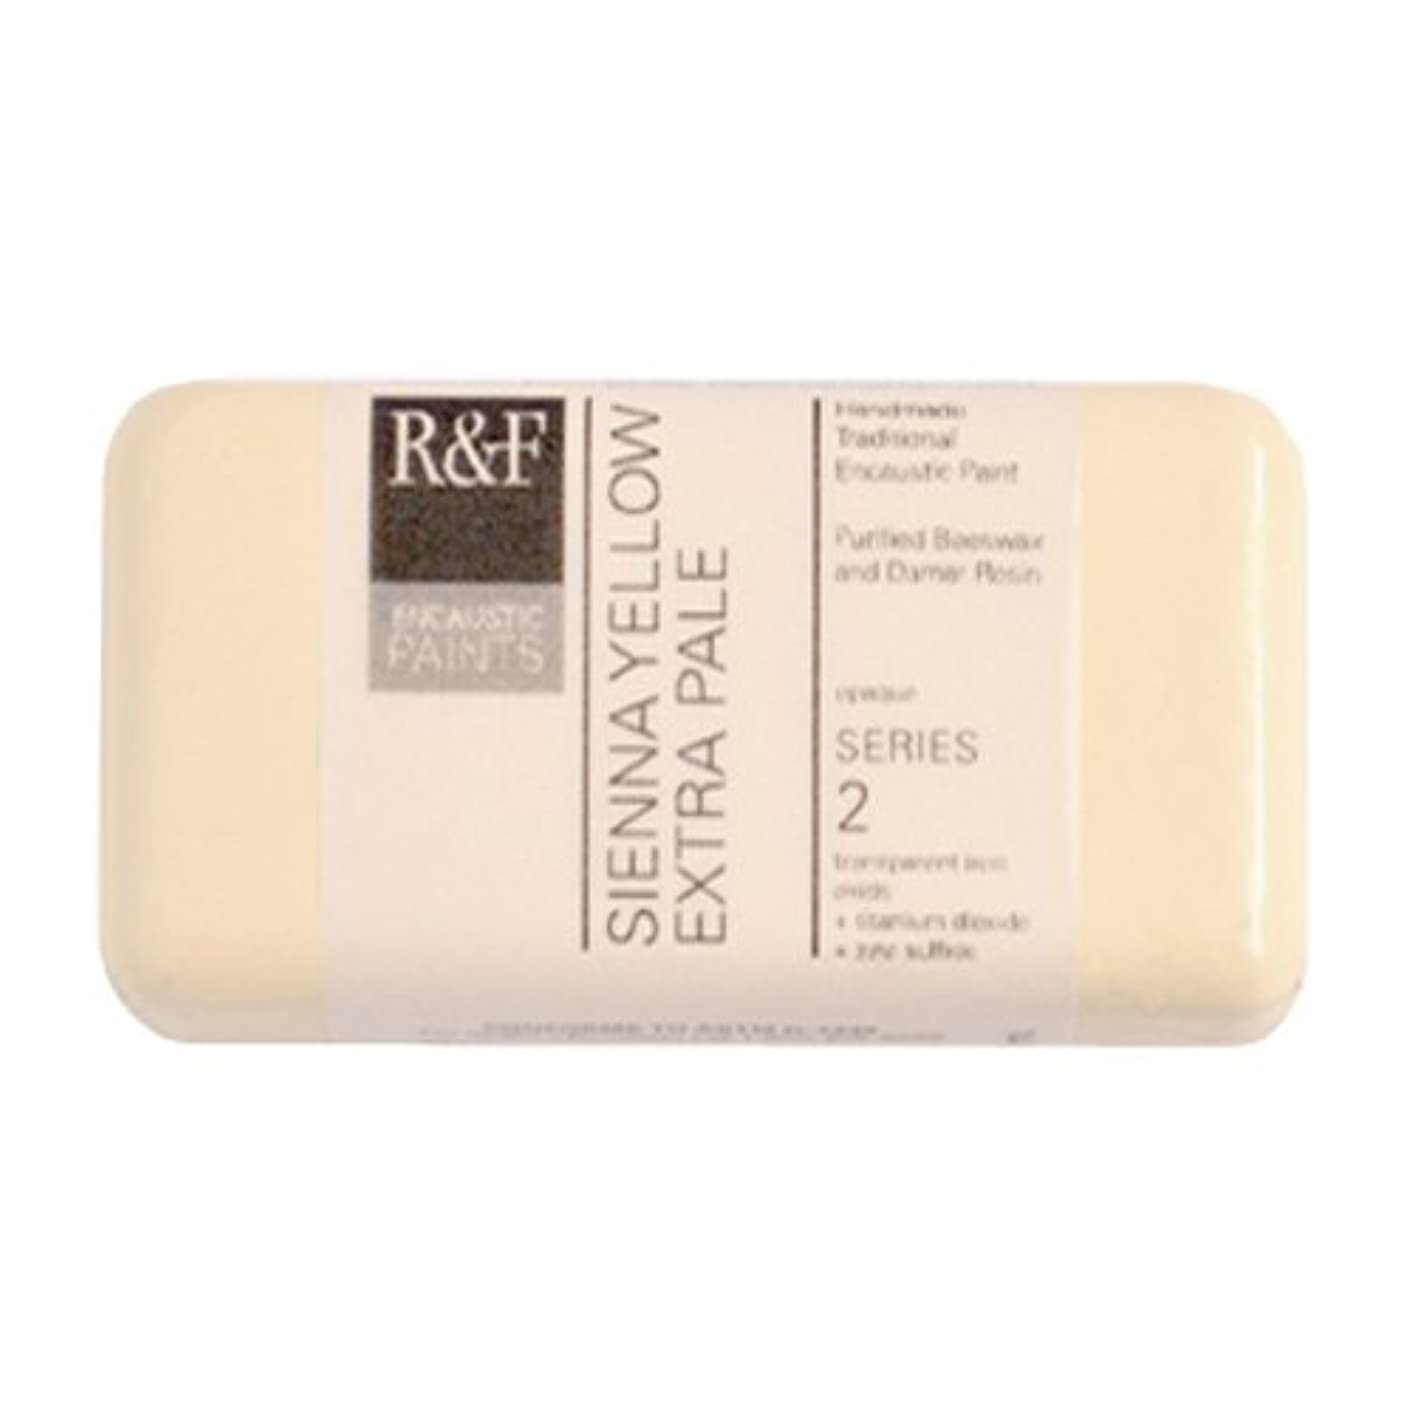 R&F Encaustic Paints, 40ml, Sienna Yellow Extra Pale